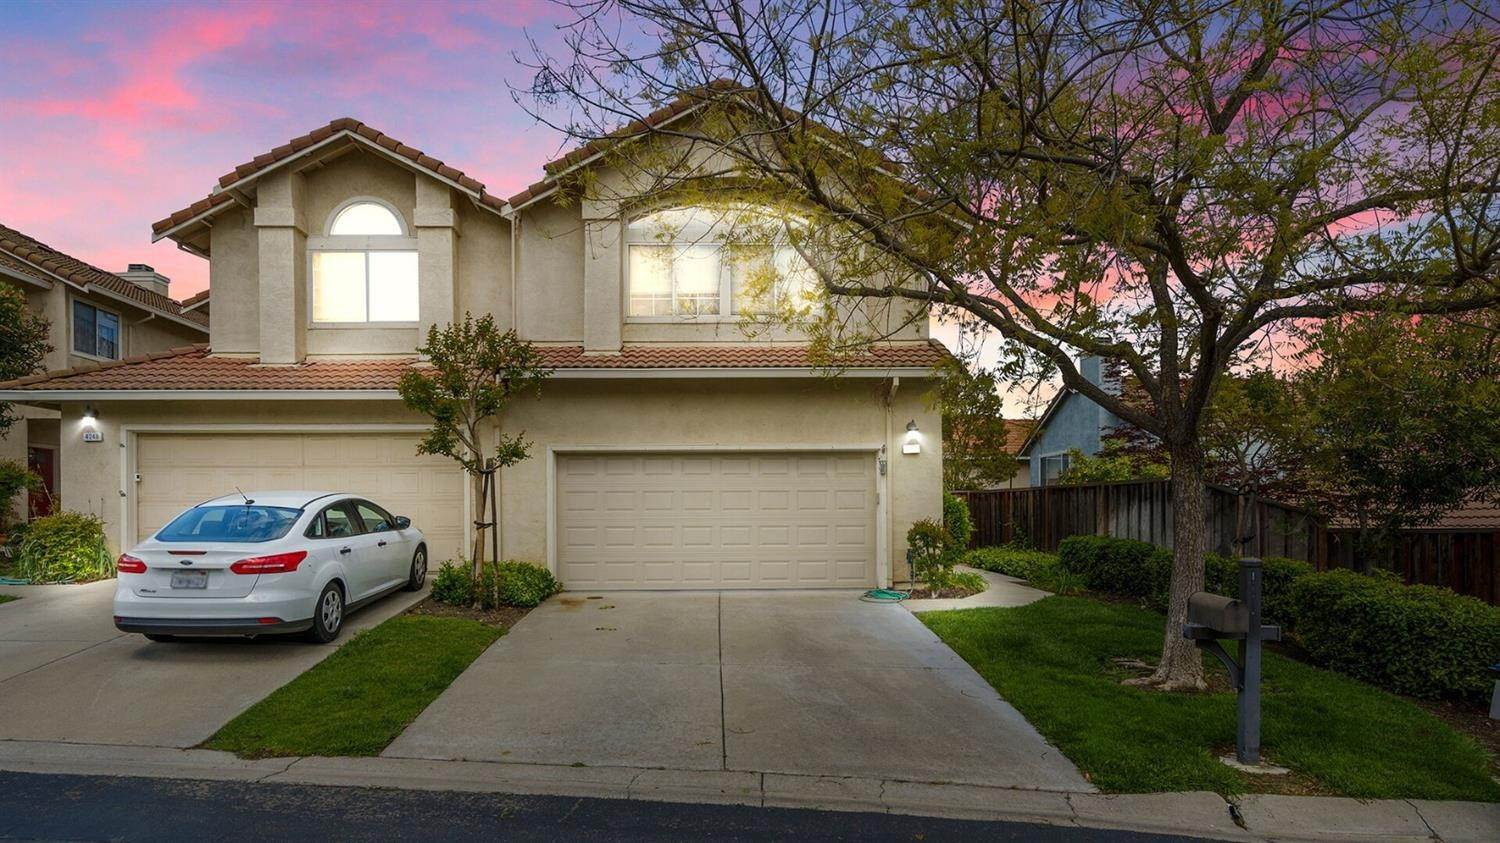 Single Family Homes for Active at 4252 Garibaldi Place Pleasanton, California 94566 United States